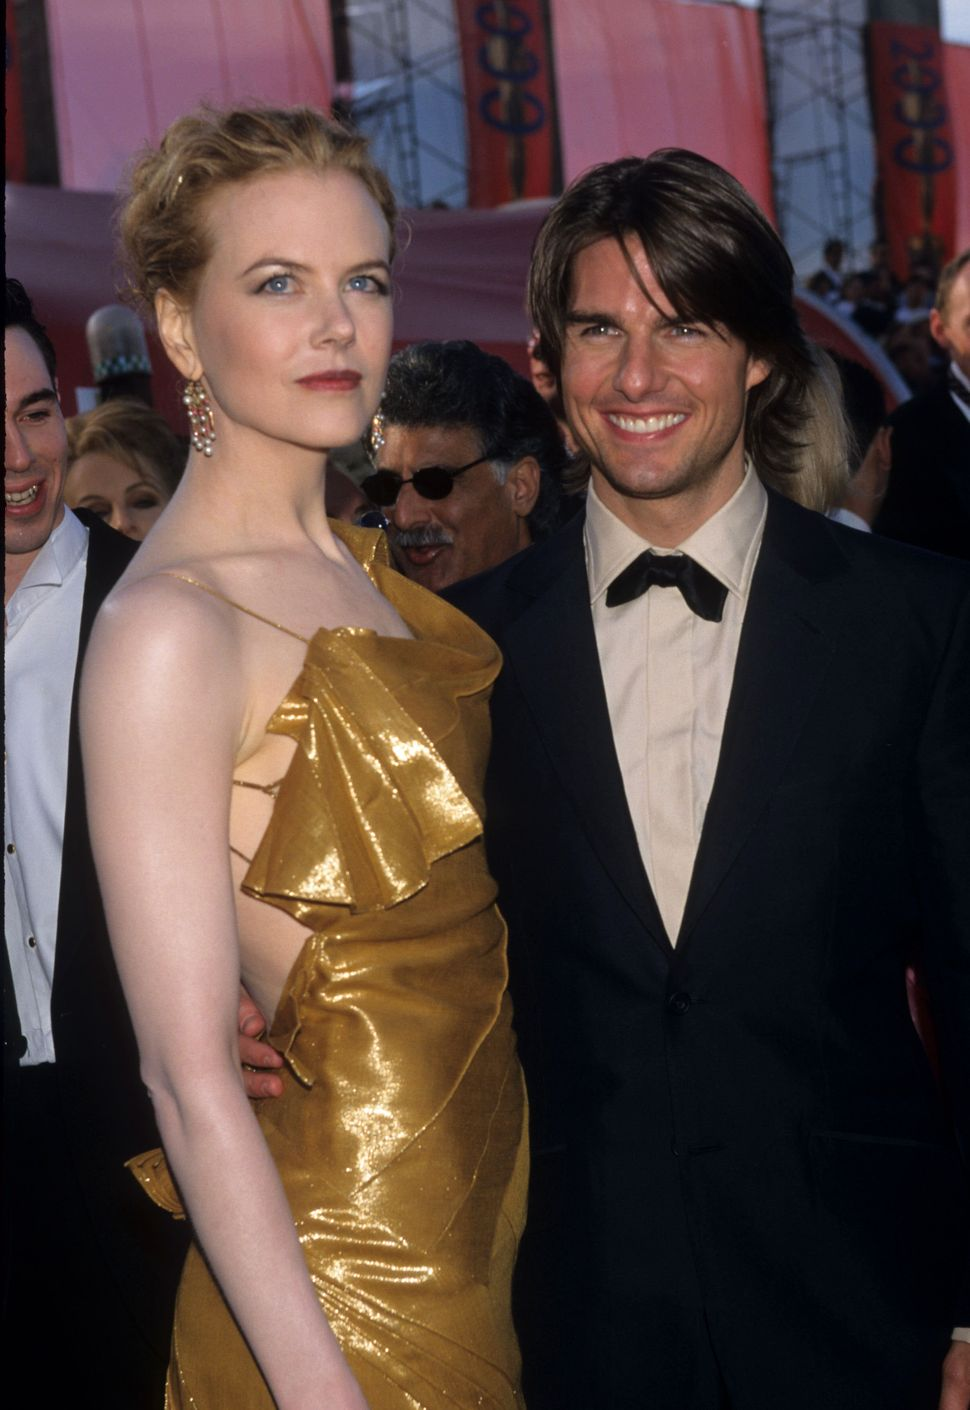 Nicole Kidman and Tom Cruise at the 72nd annual Academy Awards in 2000.